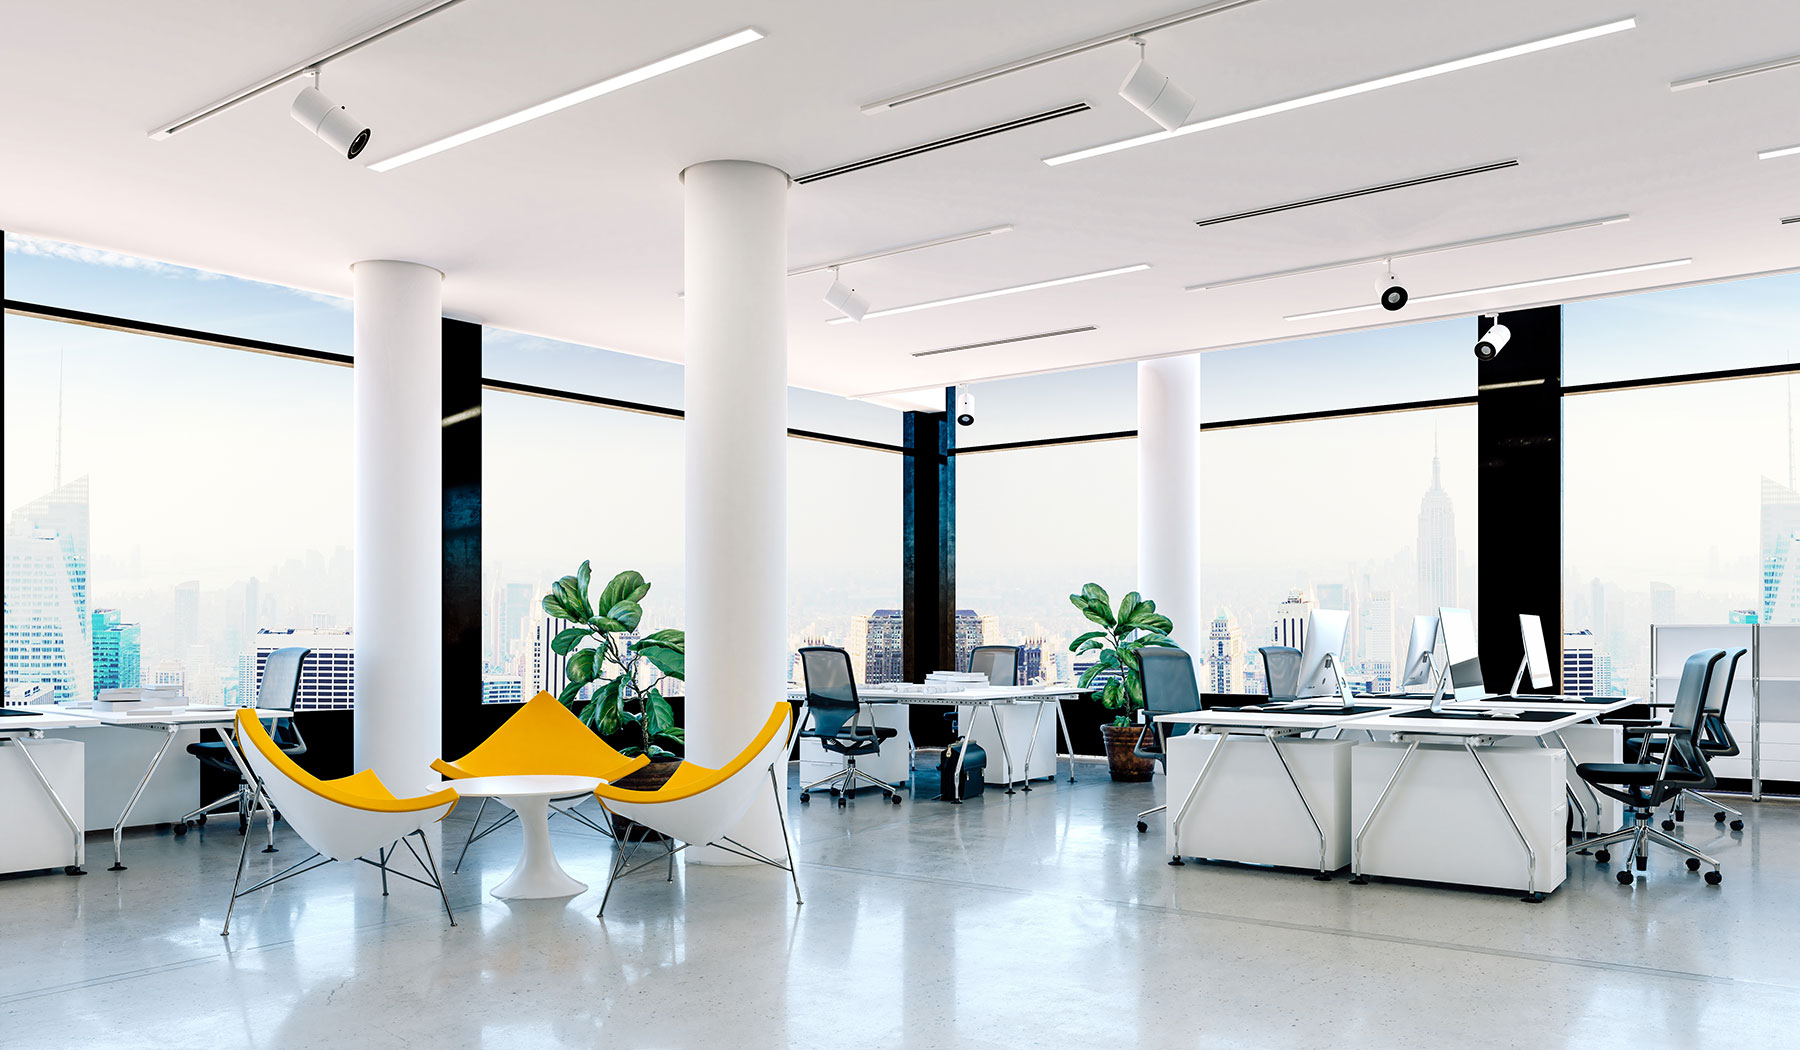 Hot Desking: How Desk Booking Software Can Increase Office Productivity